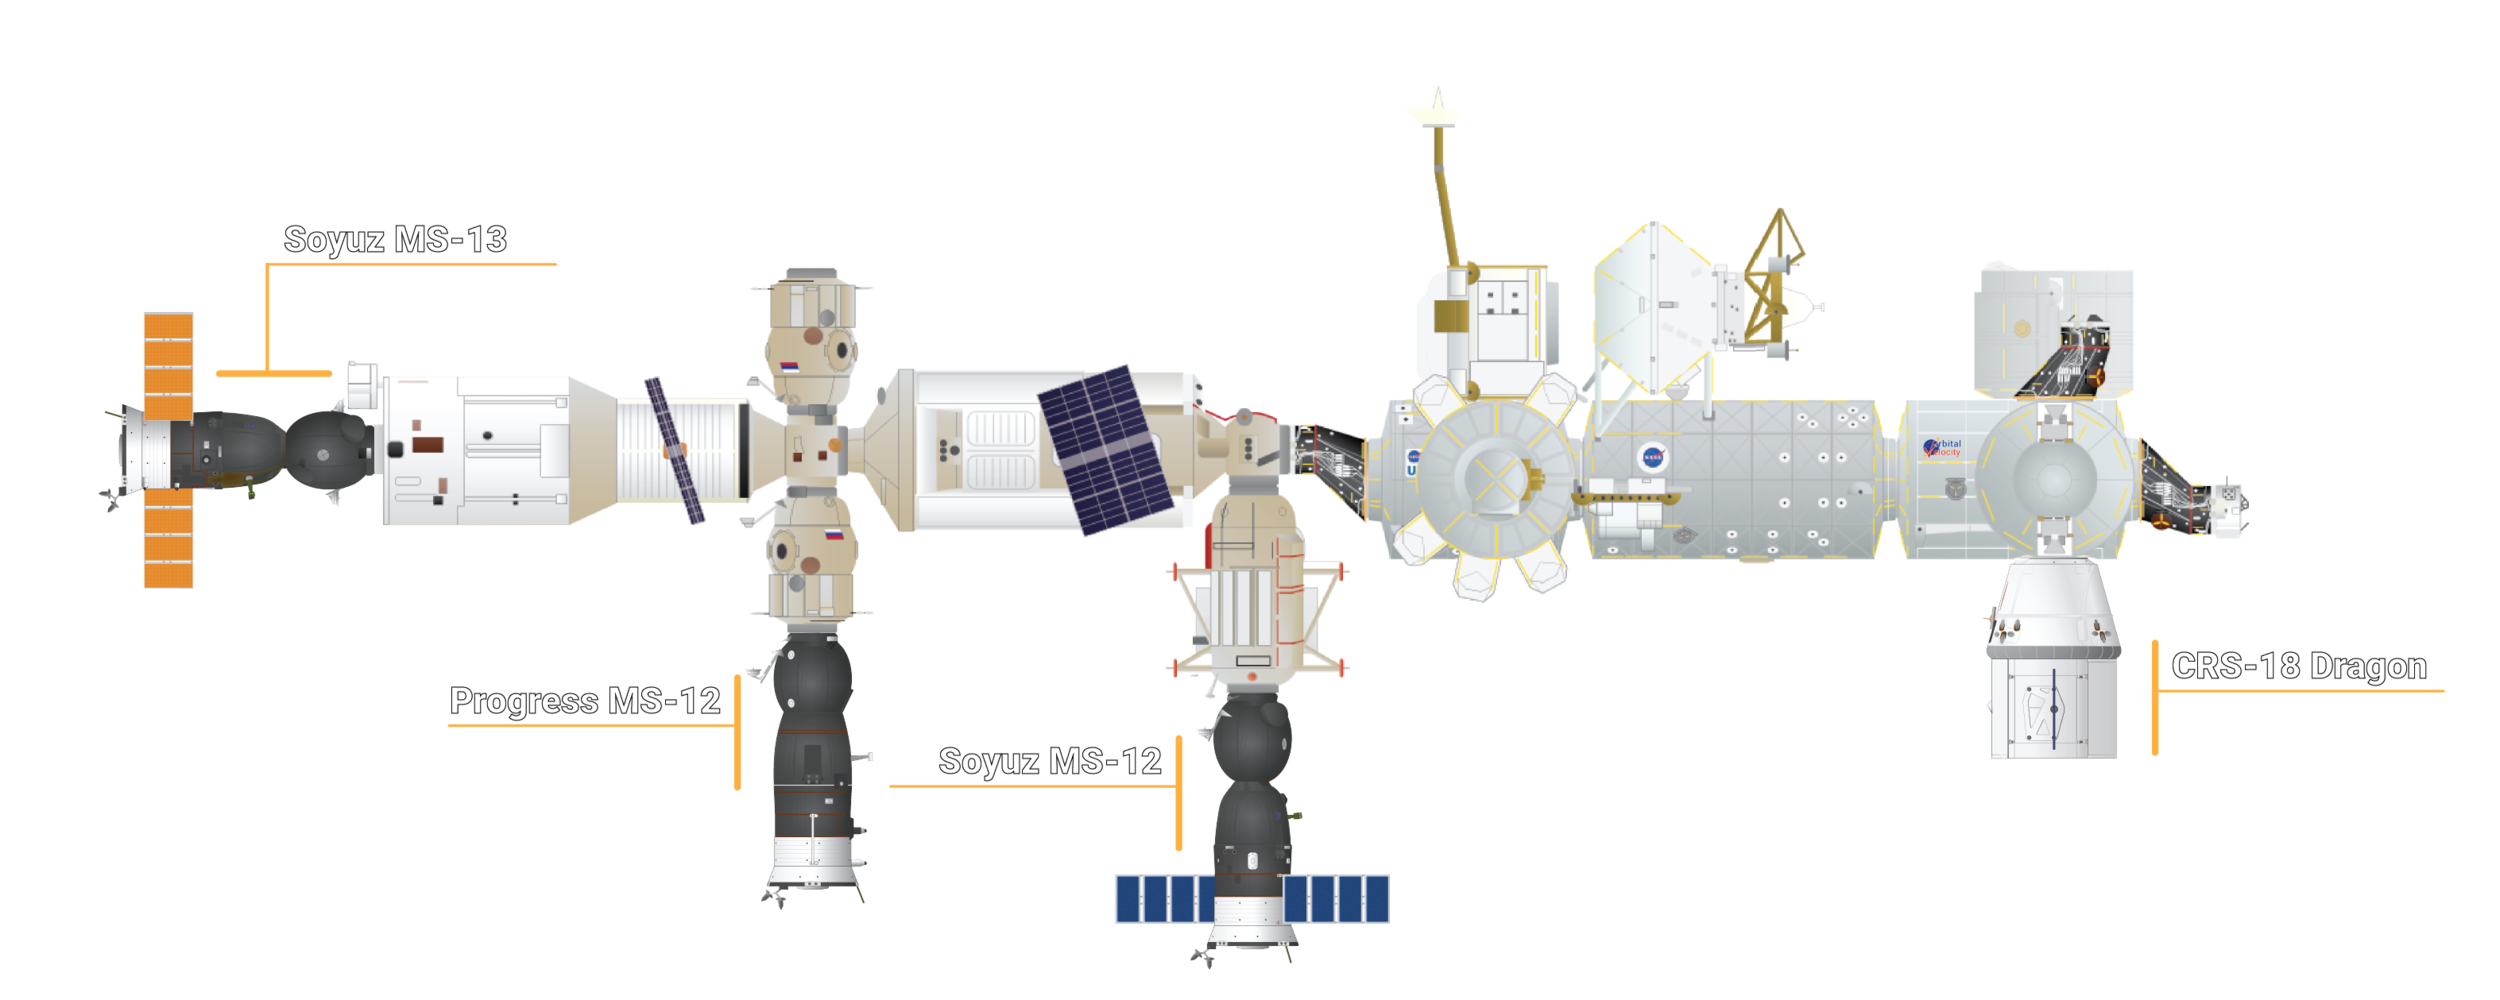 The visiting vehicles attached to the ISS following the departure of Cygnus. Credit: Orbital Velocity